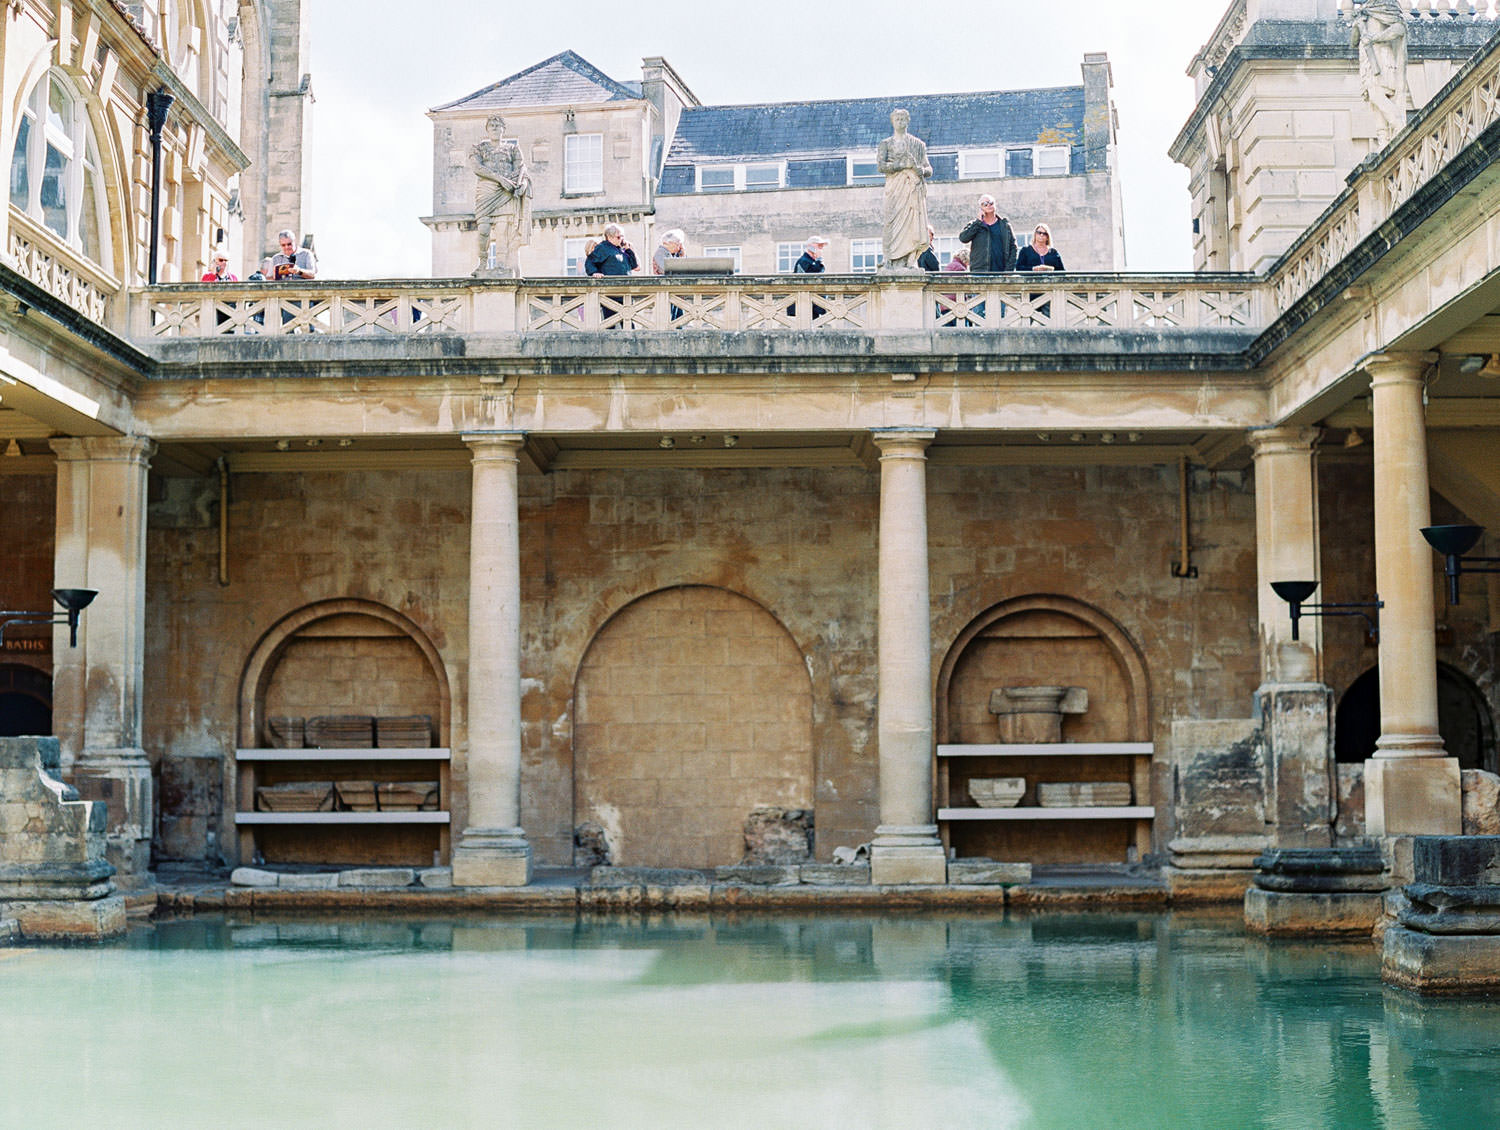 Bath surrounded by walls and columns at The Roman Baths in Bath England, Cavin Elizabeth Photography